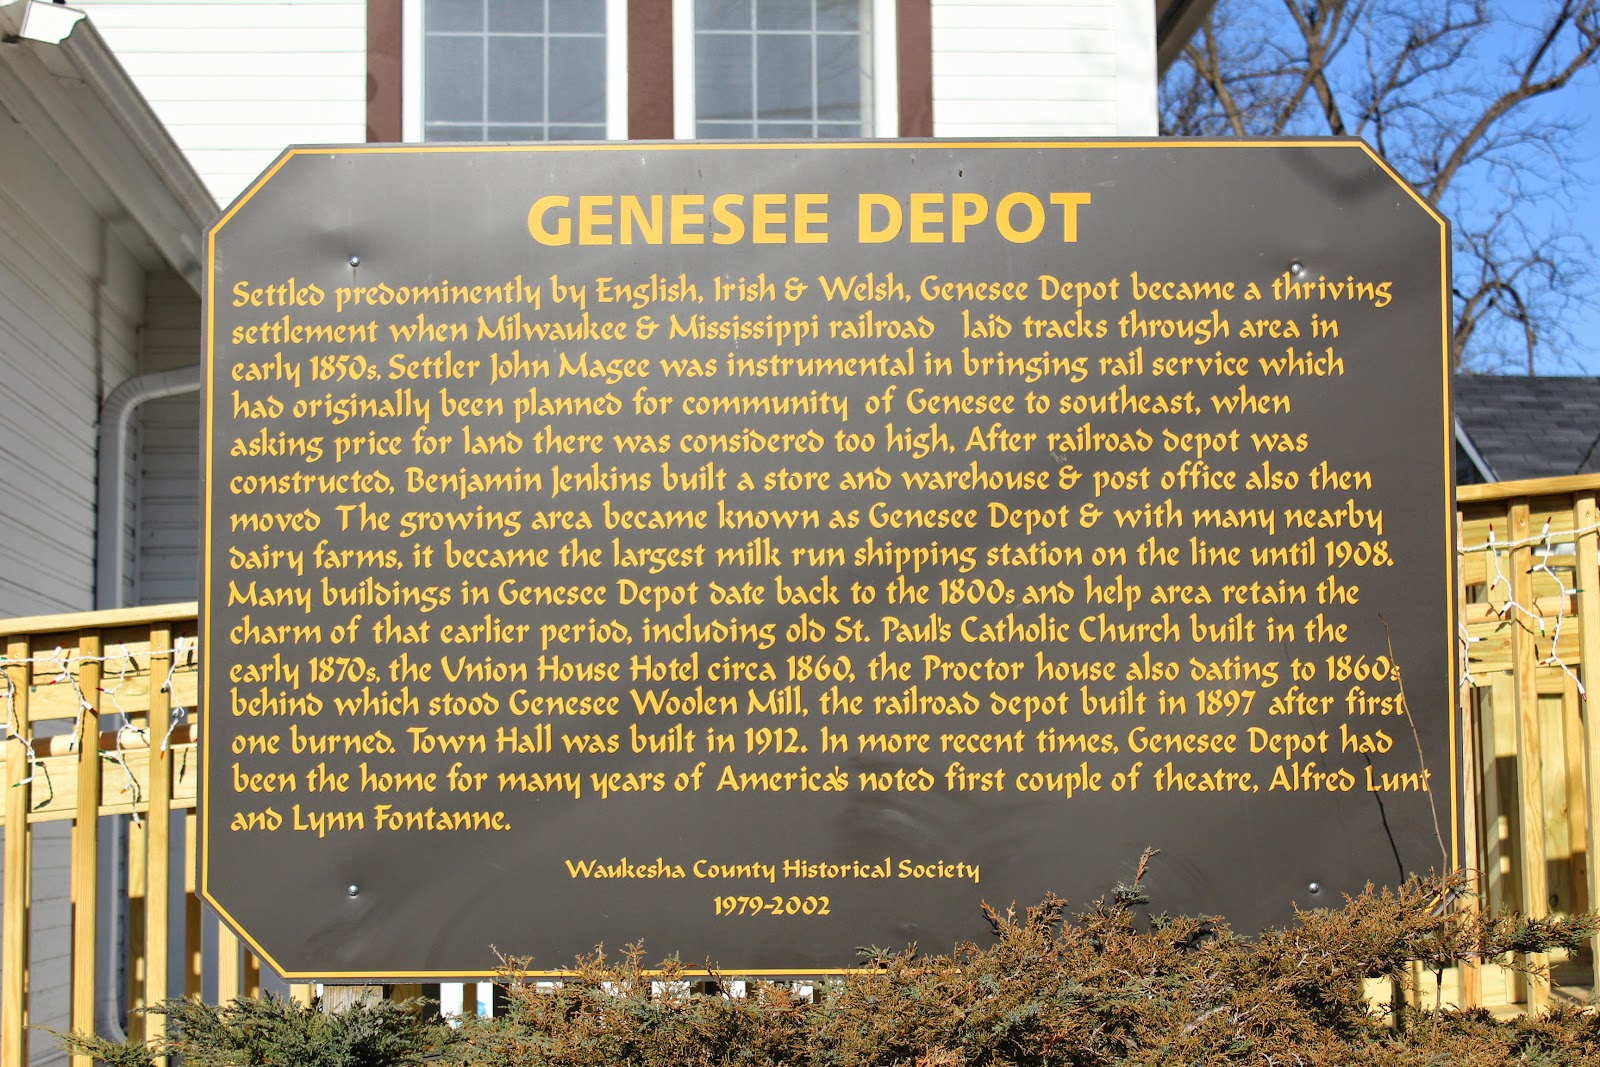 genesee depot hindu personals Genesee town board meetings meetings are held in the genesee town hall,  s43 w31391 hwy 83, genesee depot town board: regular meetings of the.